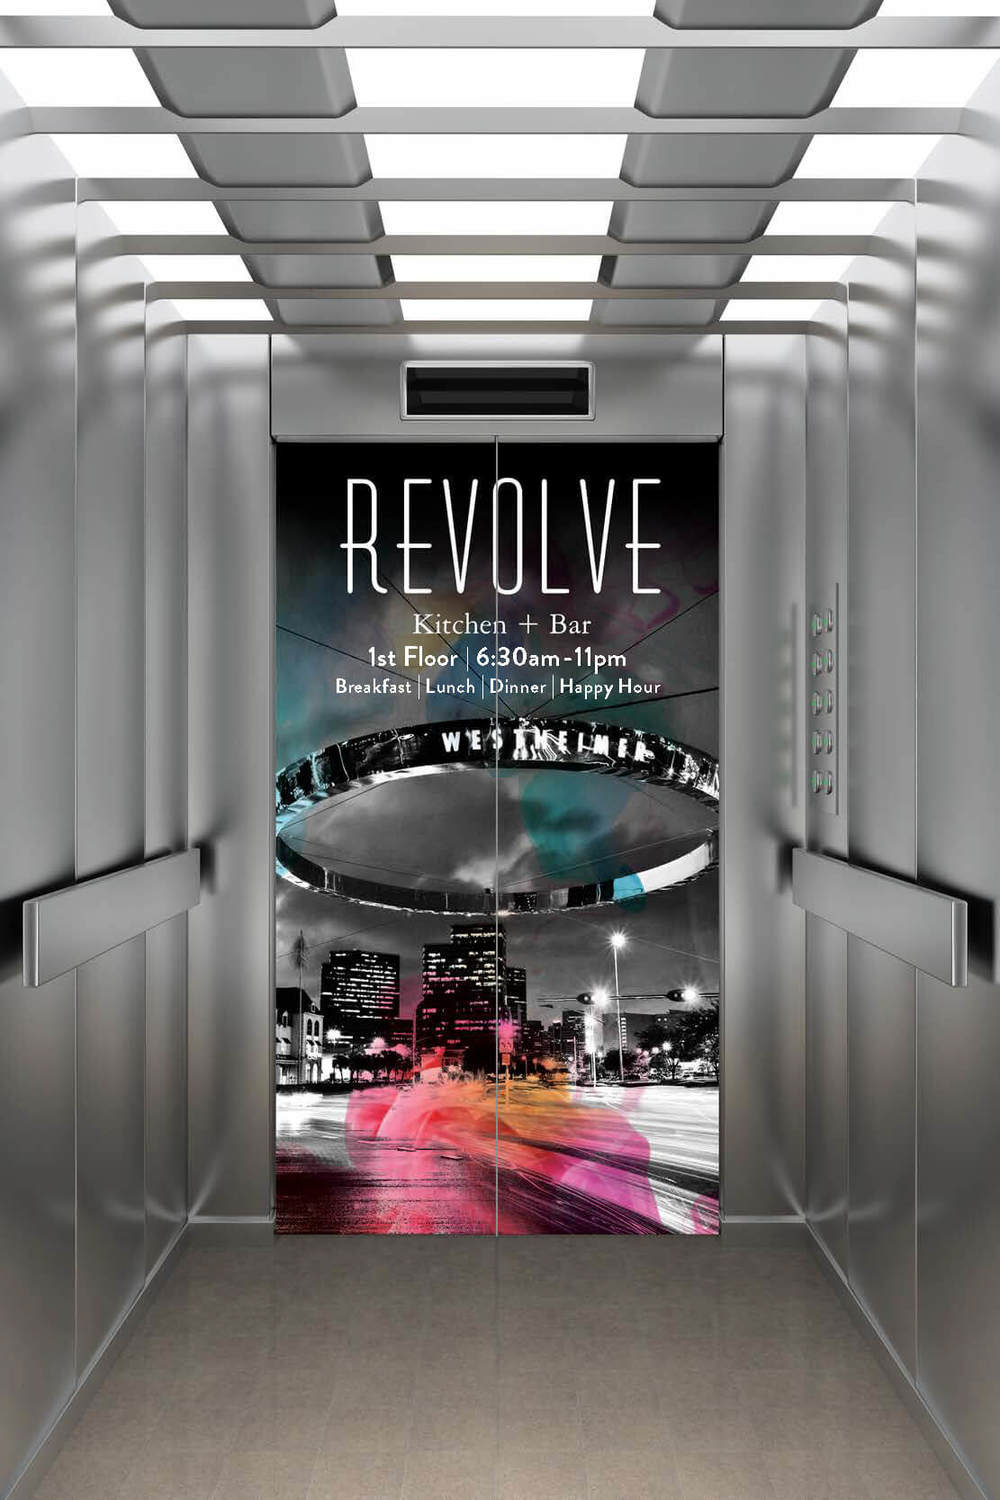 Hotel Derek Revolve Restaurant and Bar Elevator Skin.jpg